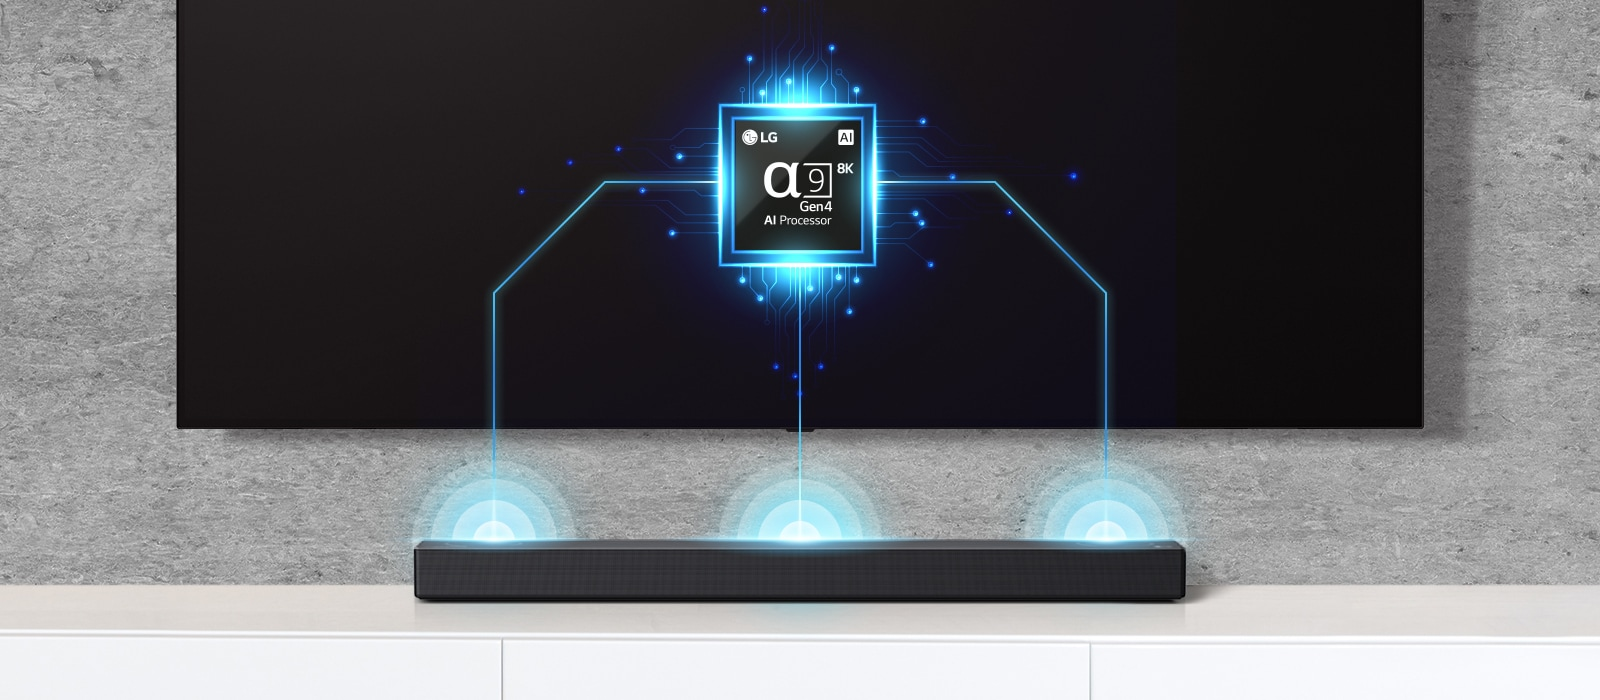 There is an alpha nine chip image on TV and there is a soundbar right below. There are also soundwave effect coming out from soundbar.